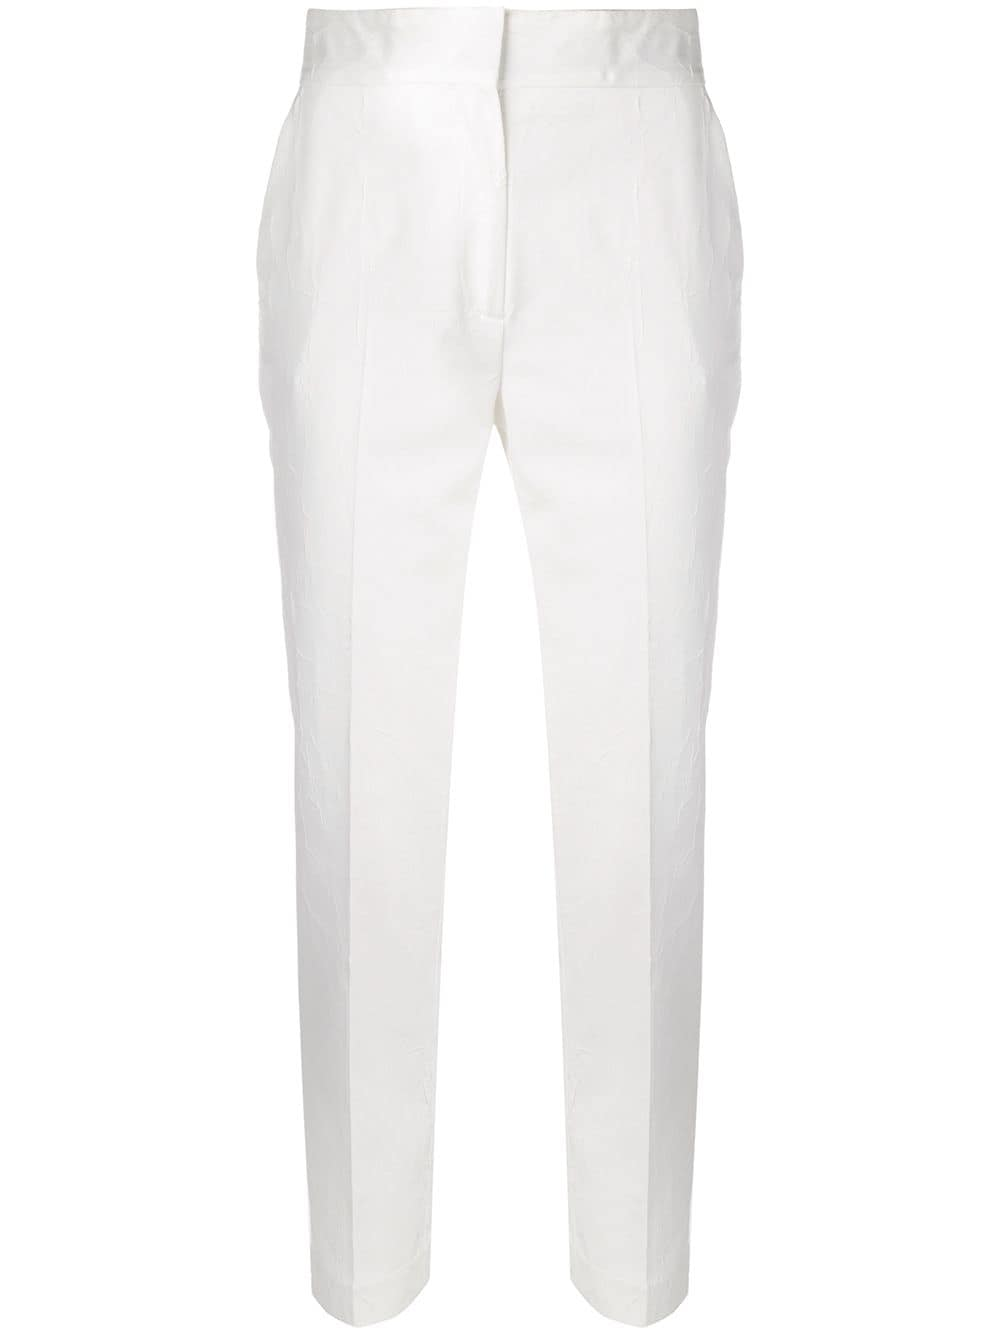 cfd9f67830671 msgm-cropped-creased-trousers-white-farfetch-com-photo.jpg 1548662777